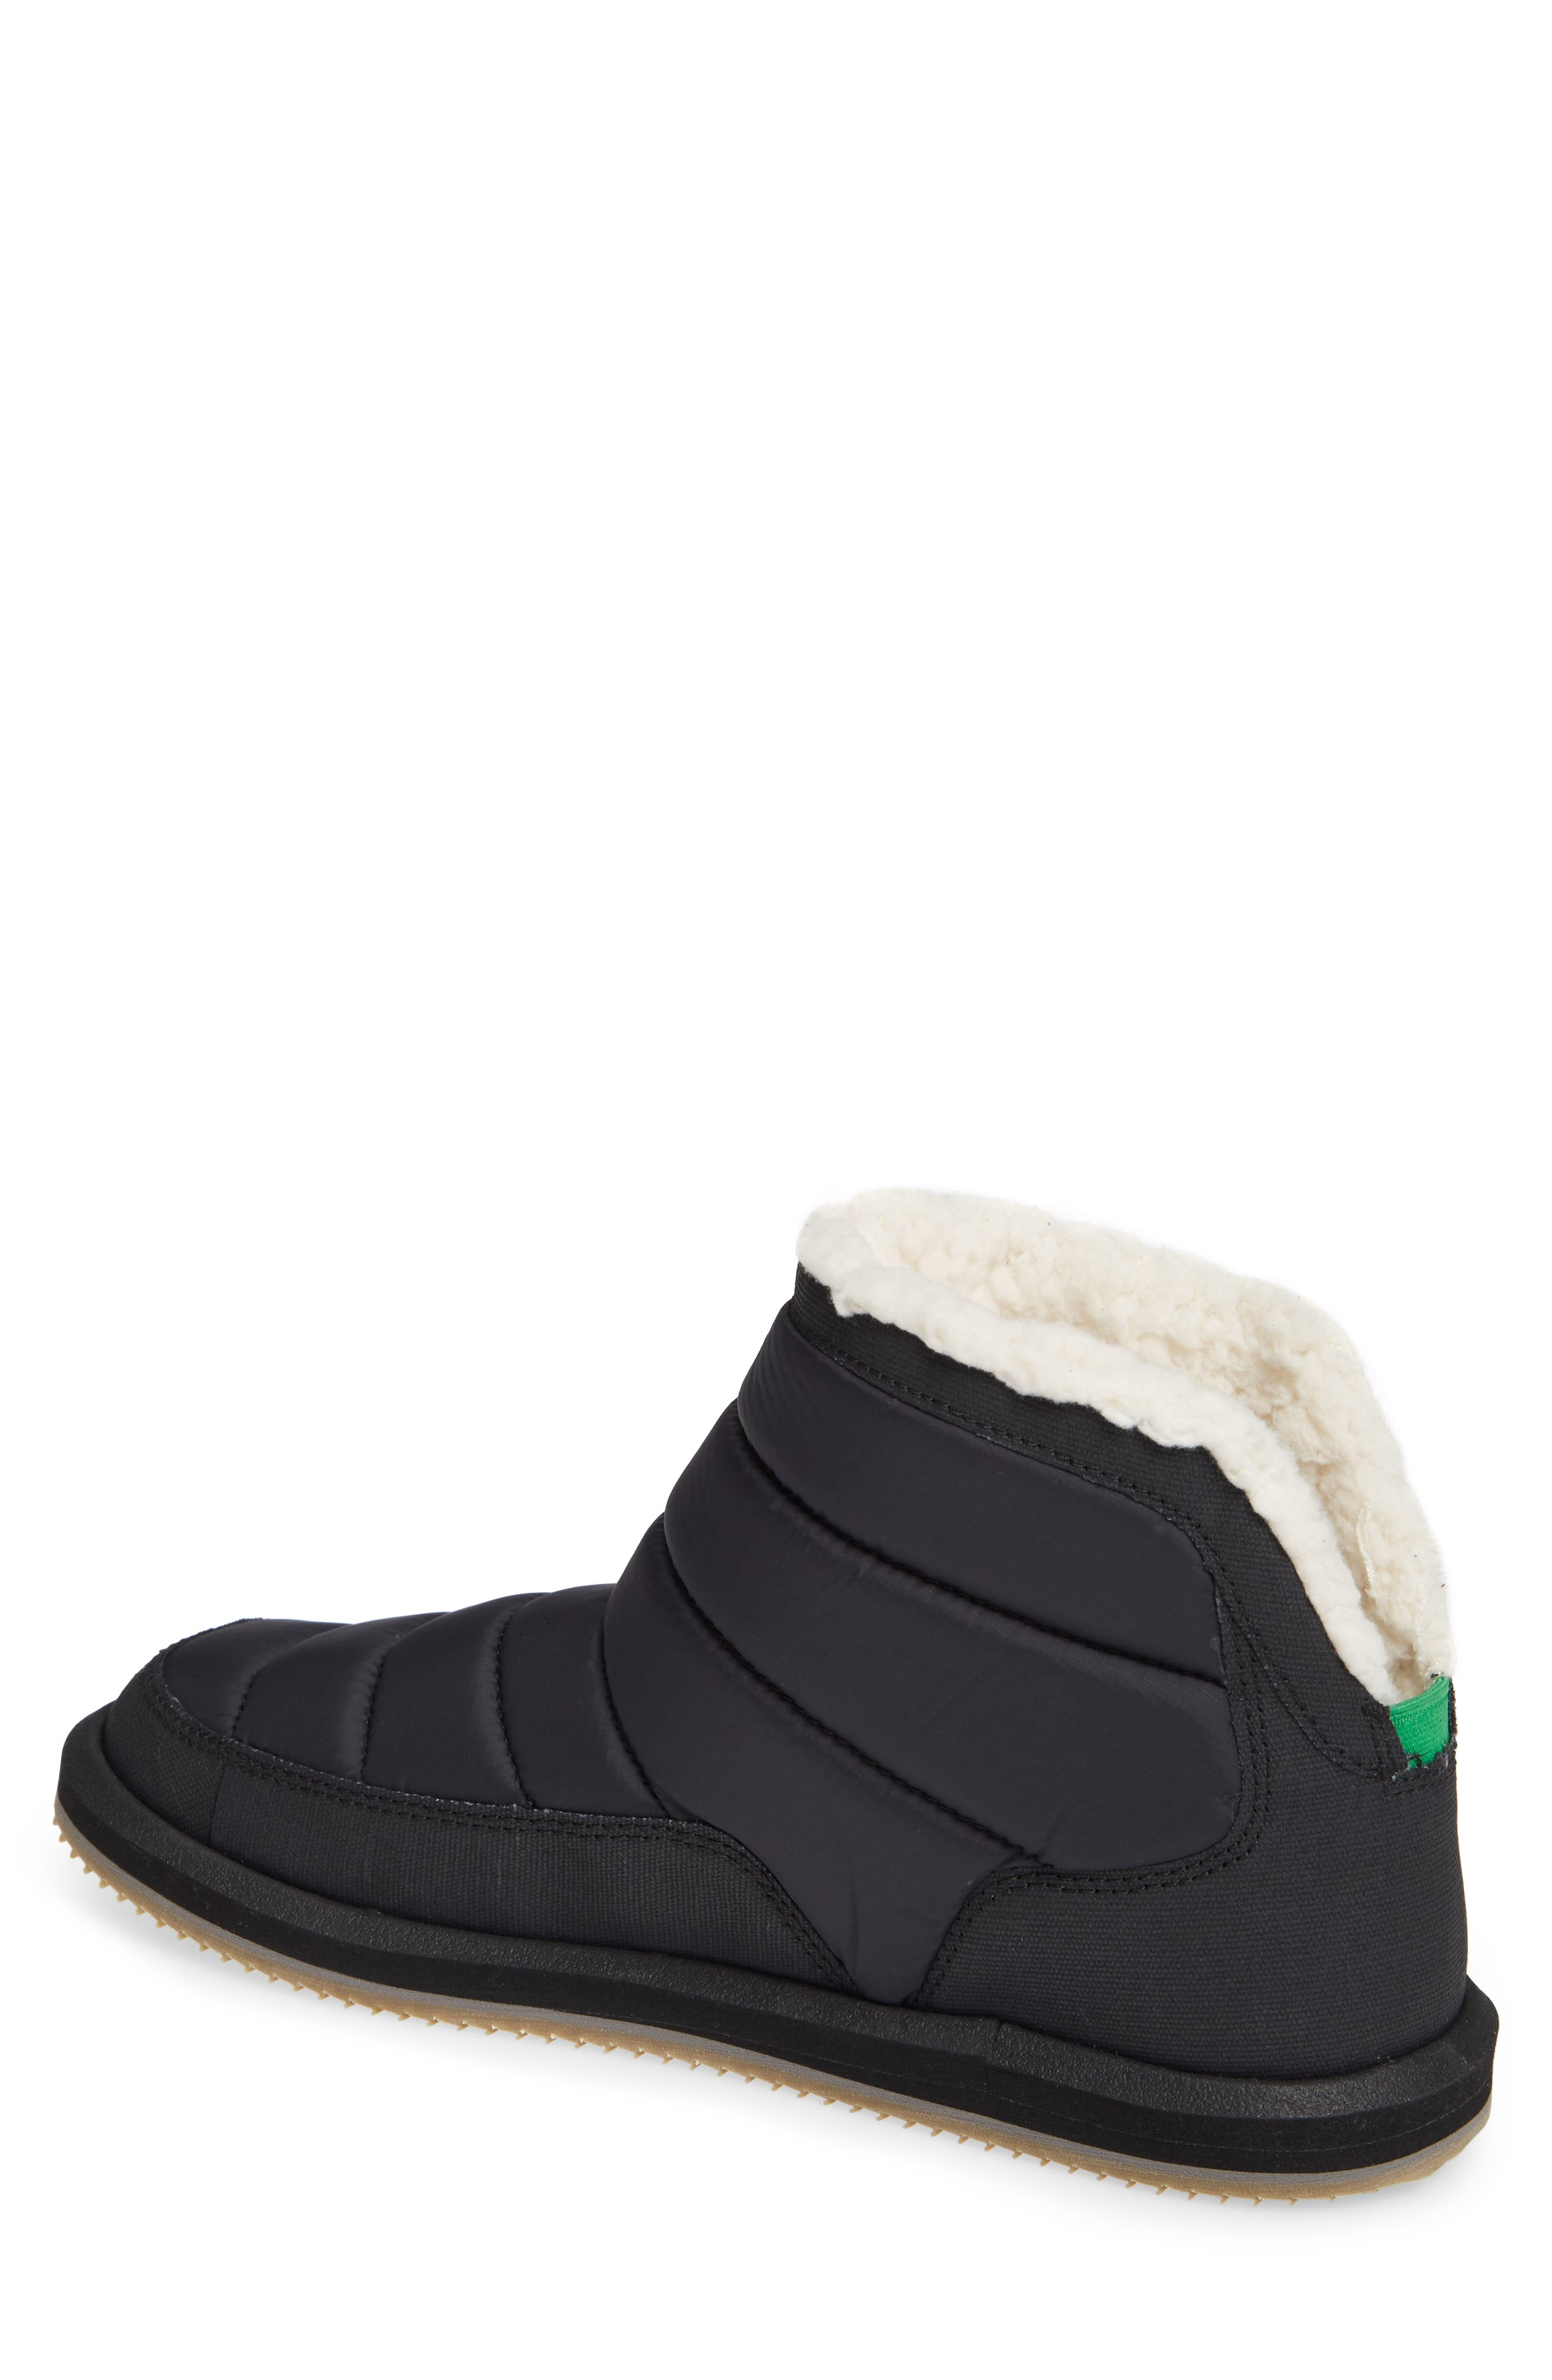 SANUK, Puff & Chill Weather Boot, Alternate thumbnail 2, color, 001